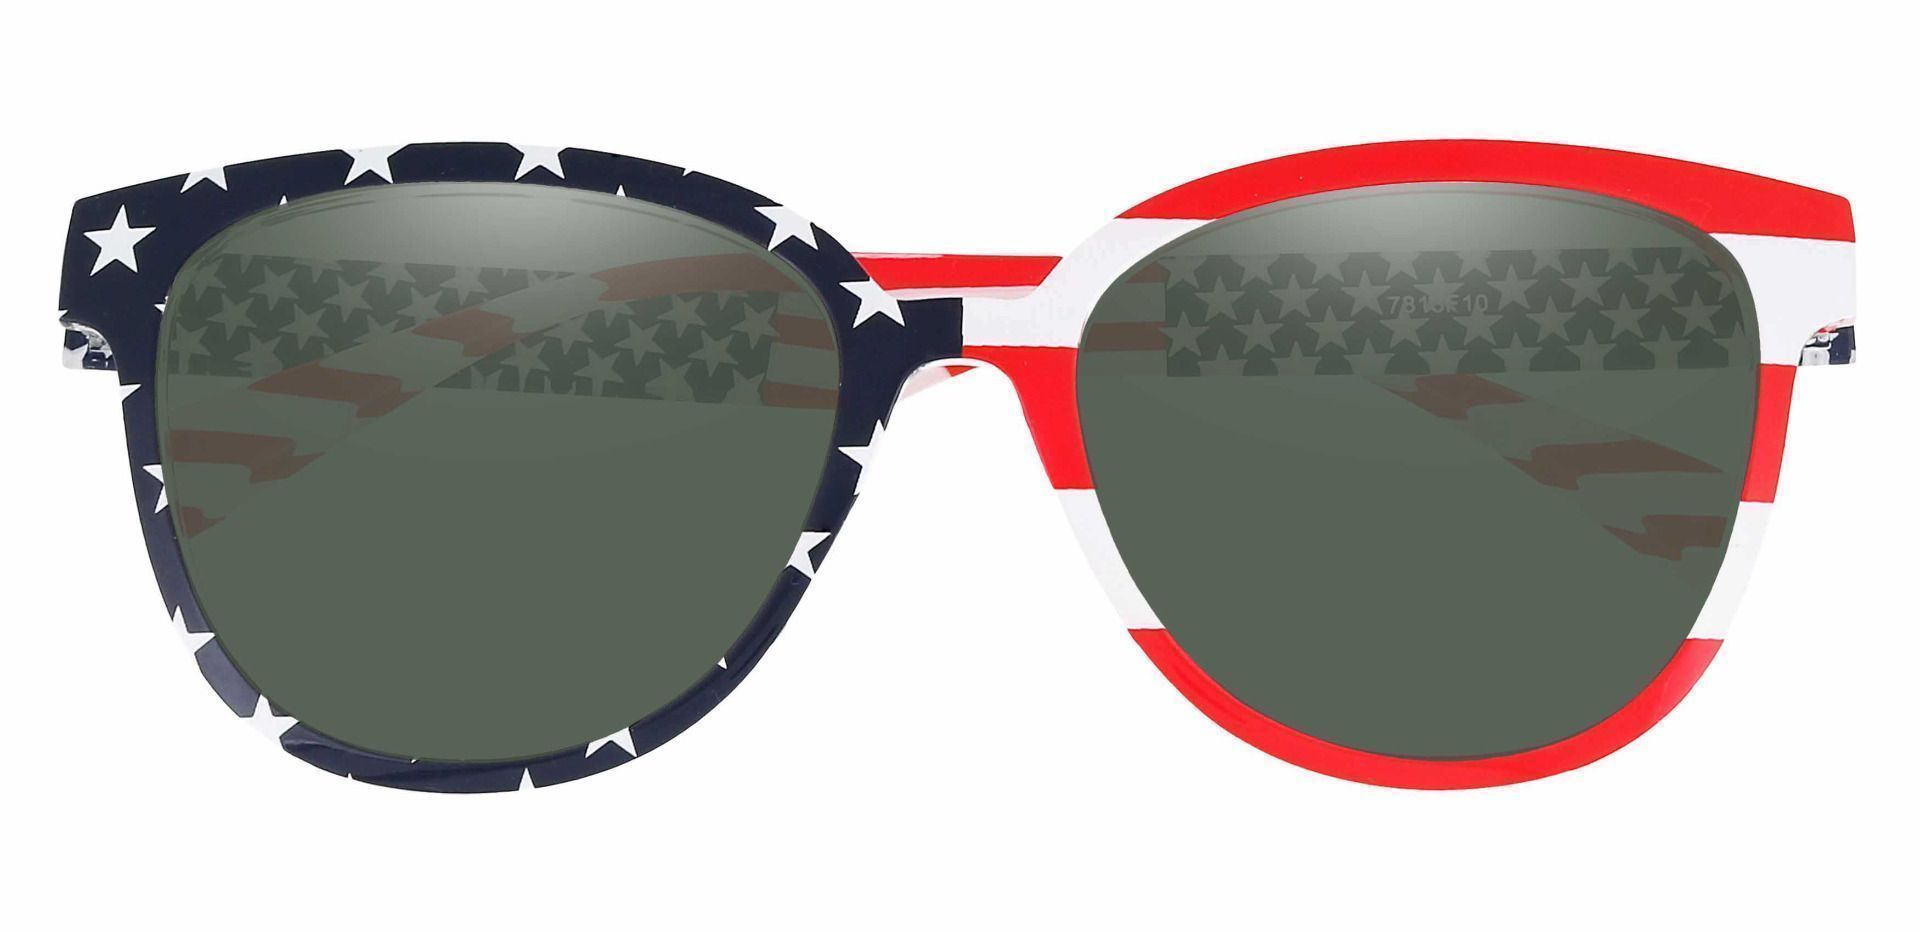 Union Square Lined Bifocal Sunglasses - Floral Frame With Green Lenses